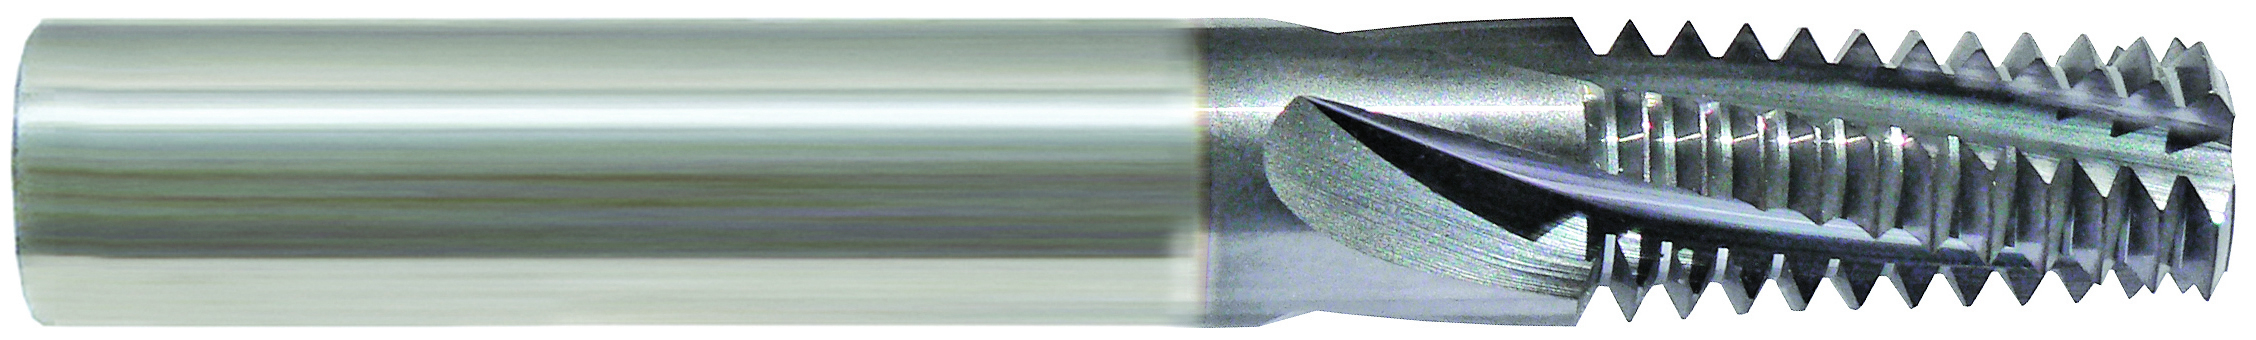 M8-0.80 MC SOLID CARBIDE THREAD MILL